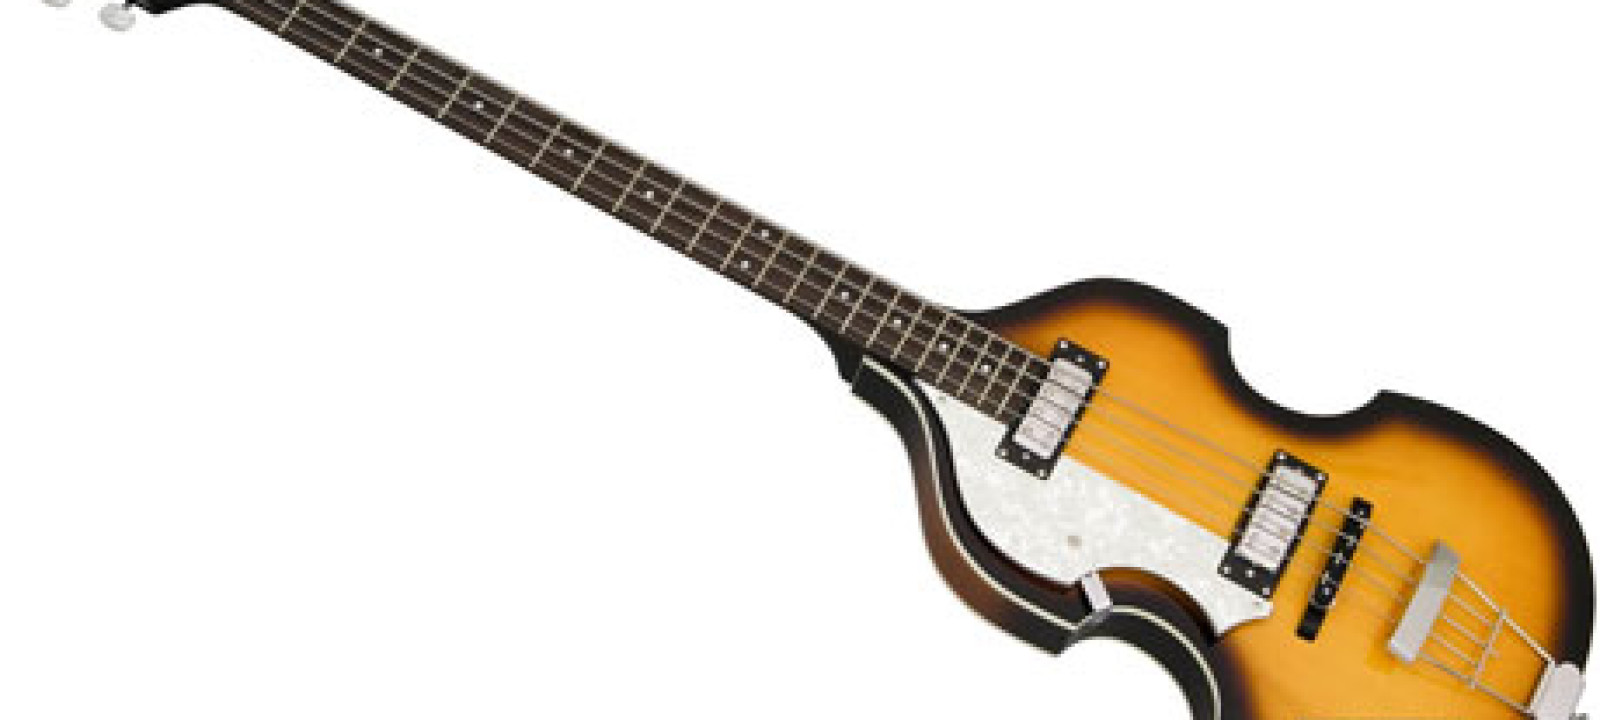 Hofner violin bass